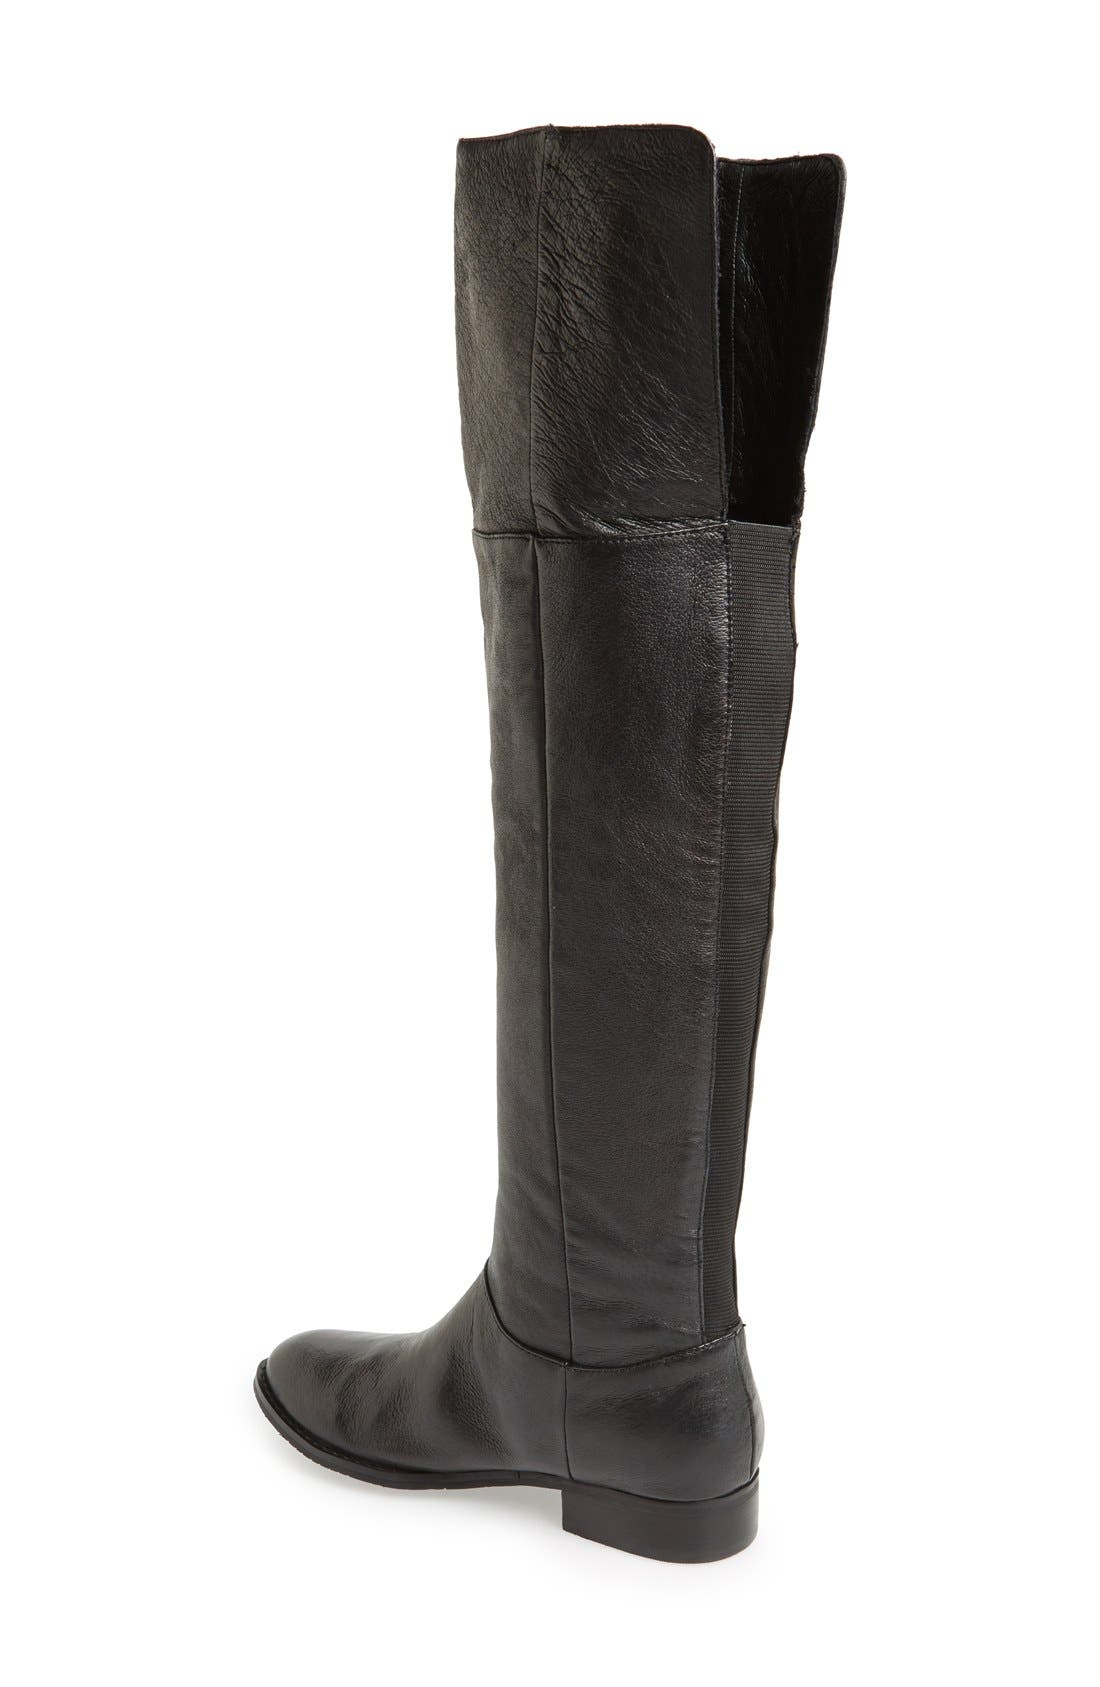 CHINESE LAUNDRY, 'Fawn' Leather Riding Boot, Alternate thumbnail 3, color, 001